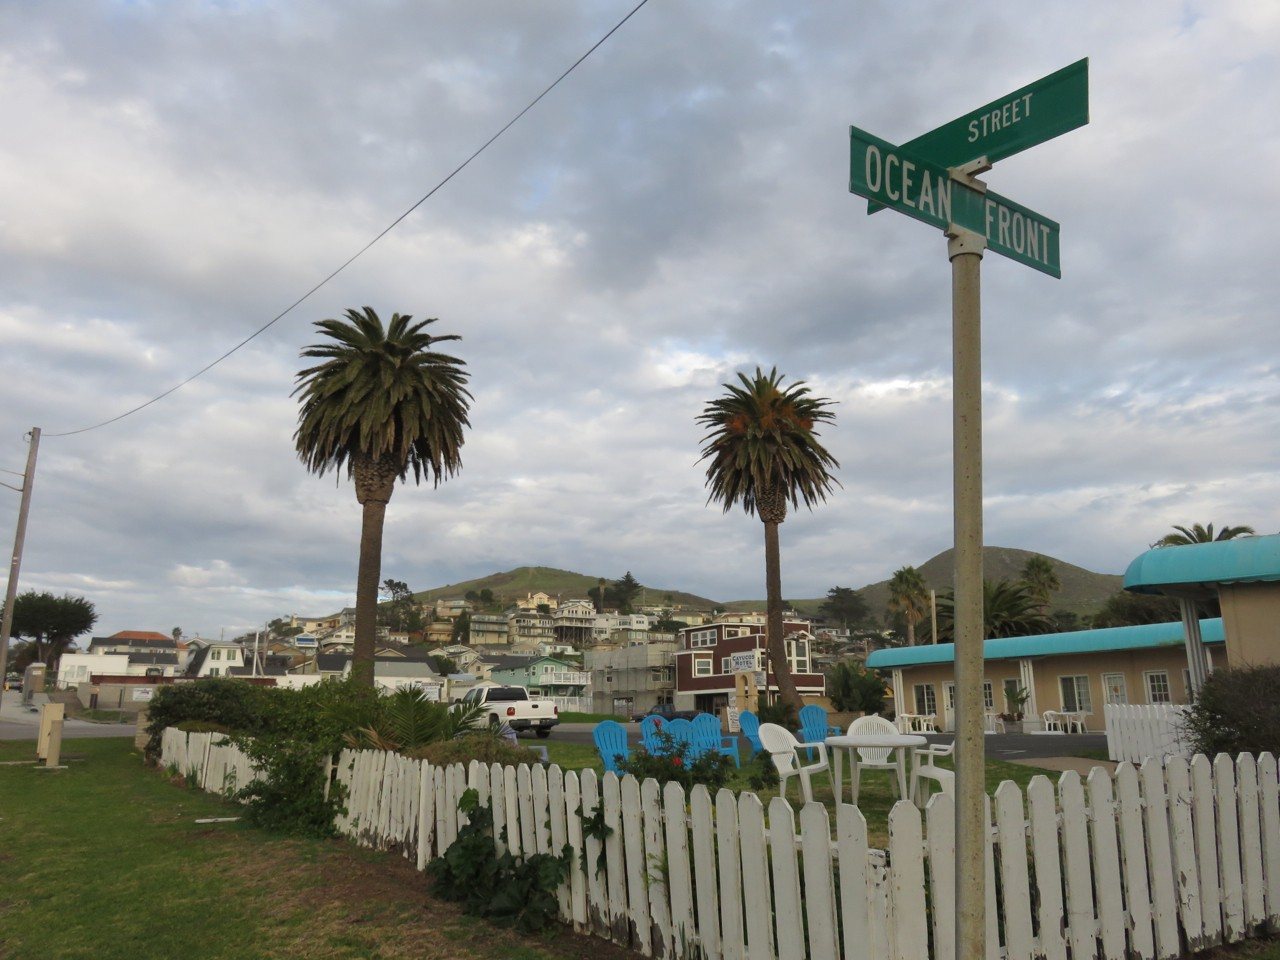 The throw-back surfing town of Cayucos. Love the vintage blue-green paint.